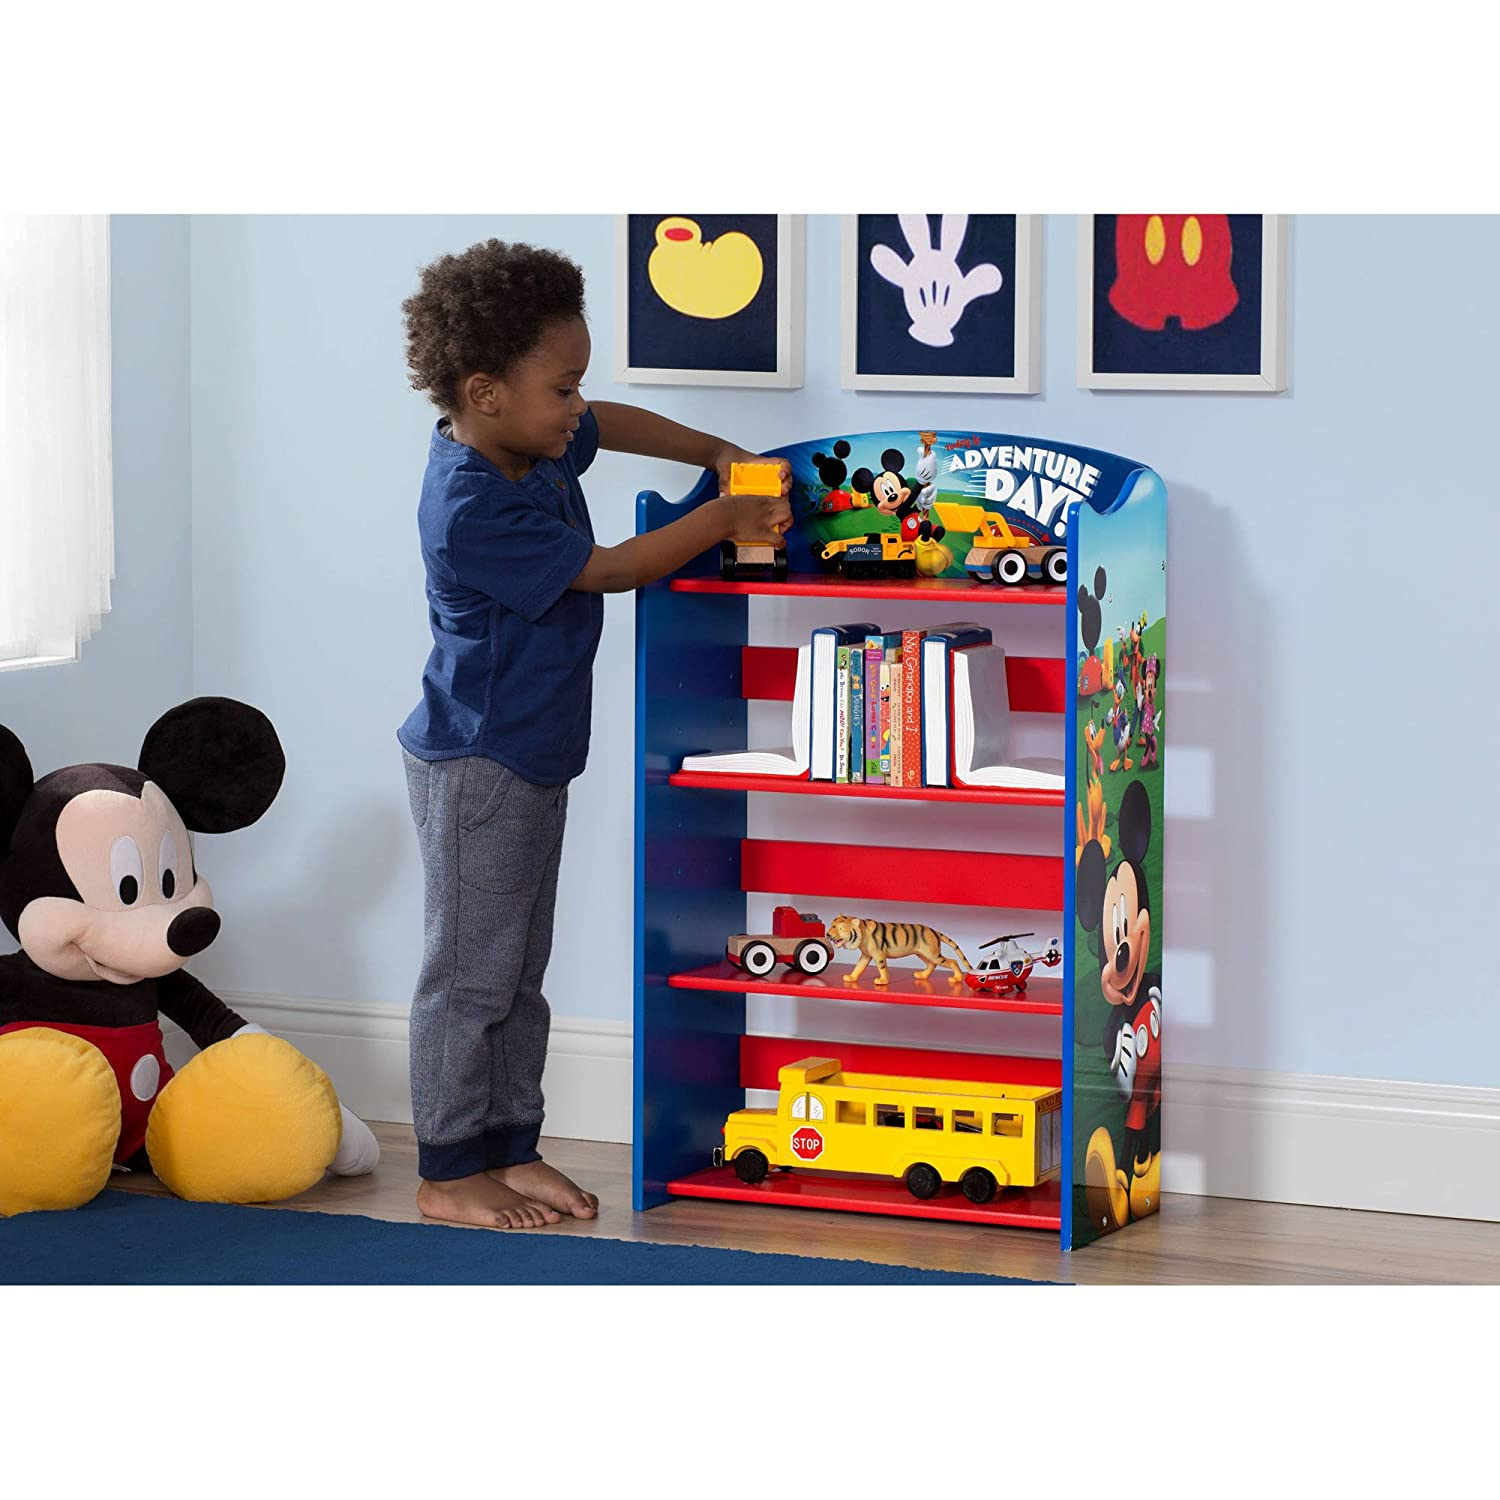 new arrival 7b280 a9cad Amazon.com: Mickey Mouse Bookshelf: Kitchen & Dining